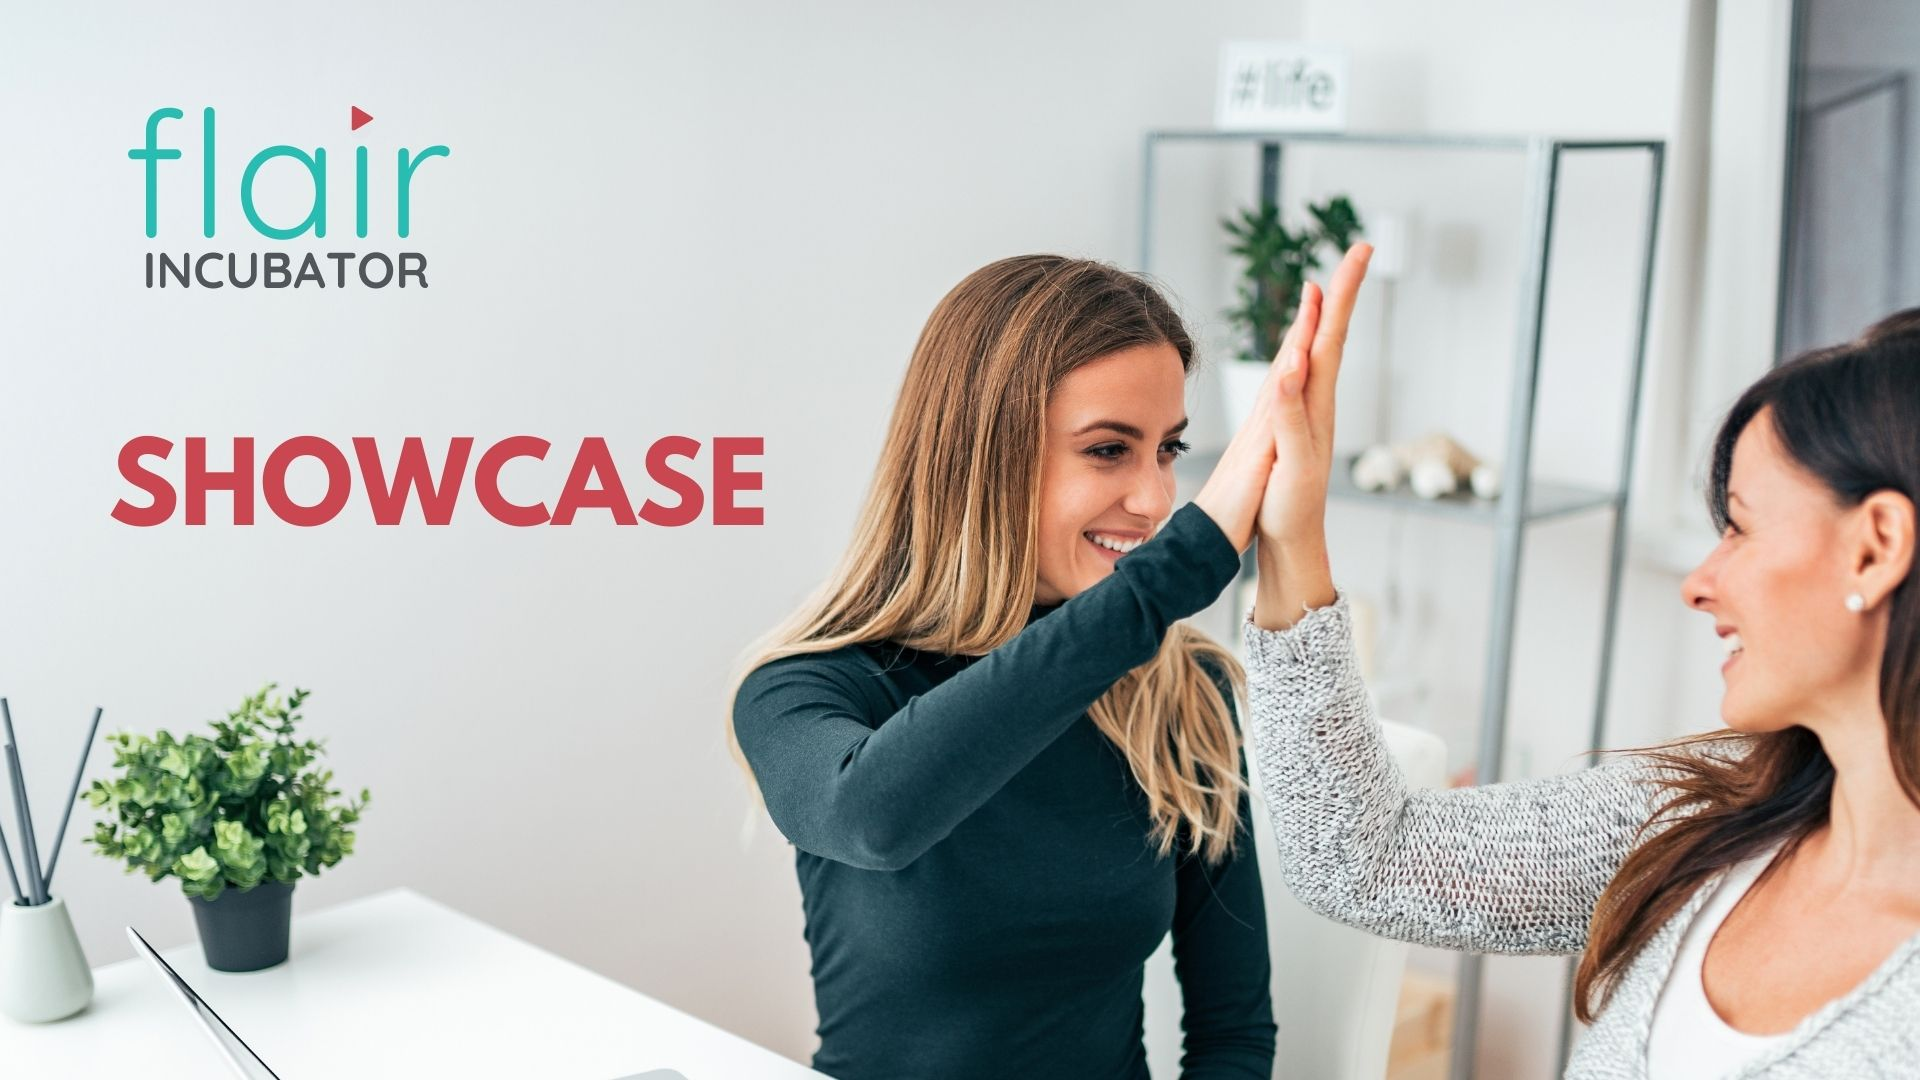 Flair Incubator Showcase